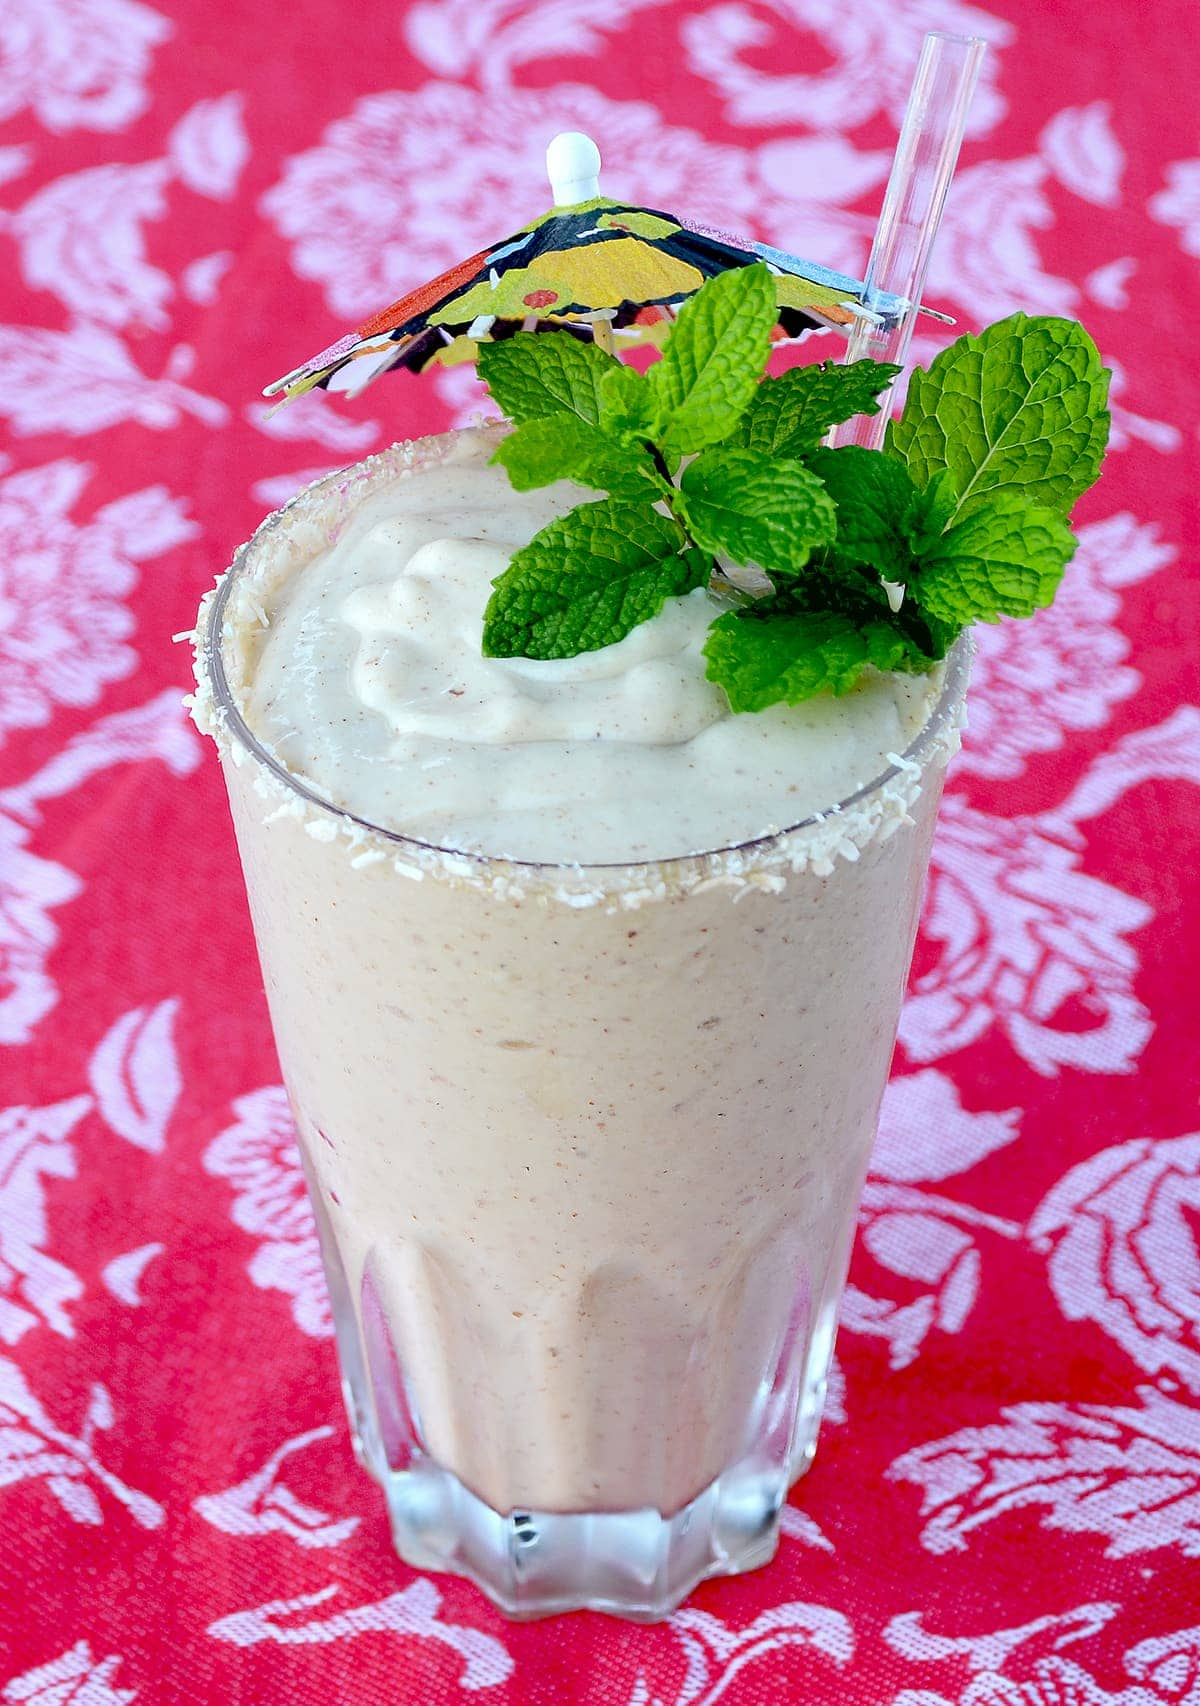 This Creamy Vegan Pawpaw Smoothie recipe is rich, tropical and features a rare fruit that is native to North American and once a popular treat served by American presidents. | vintagekitty.com